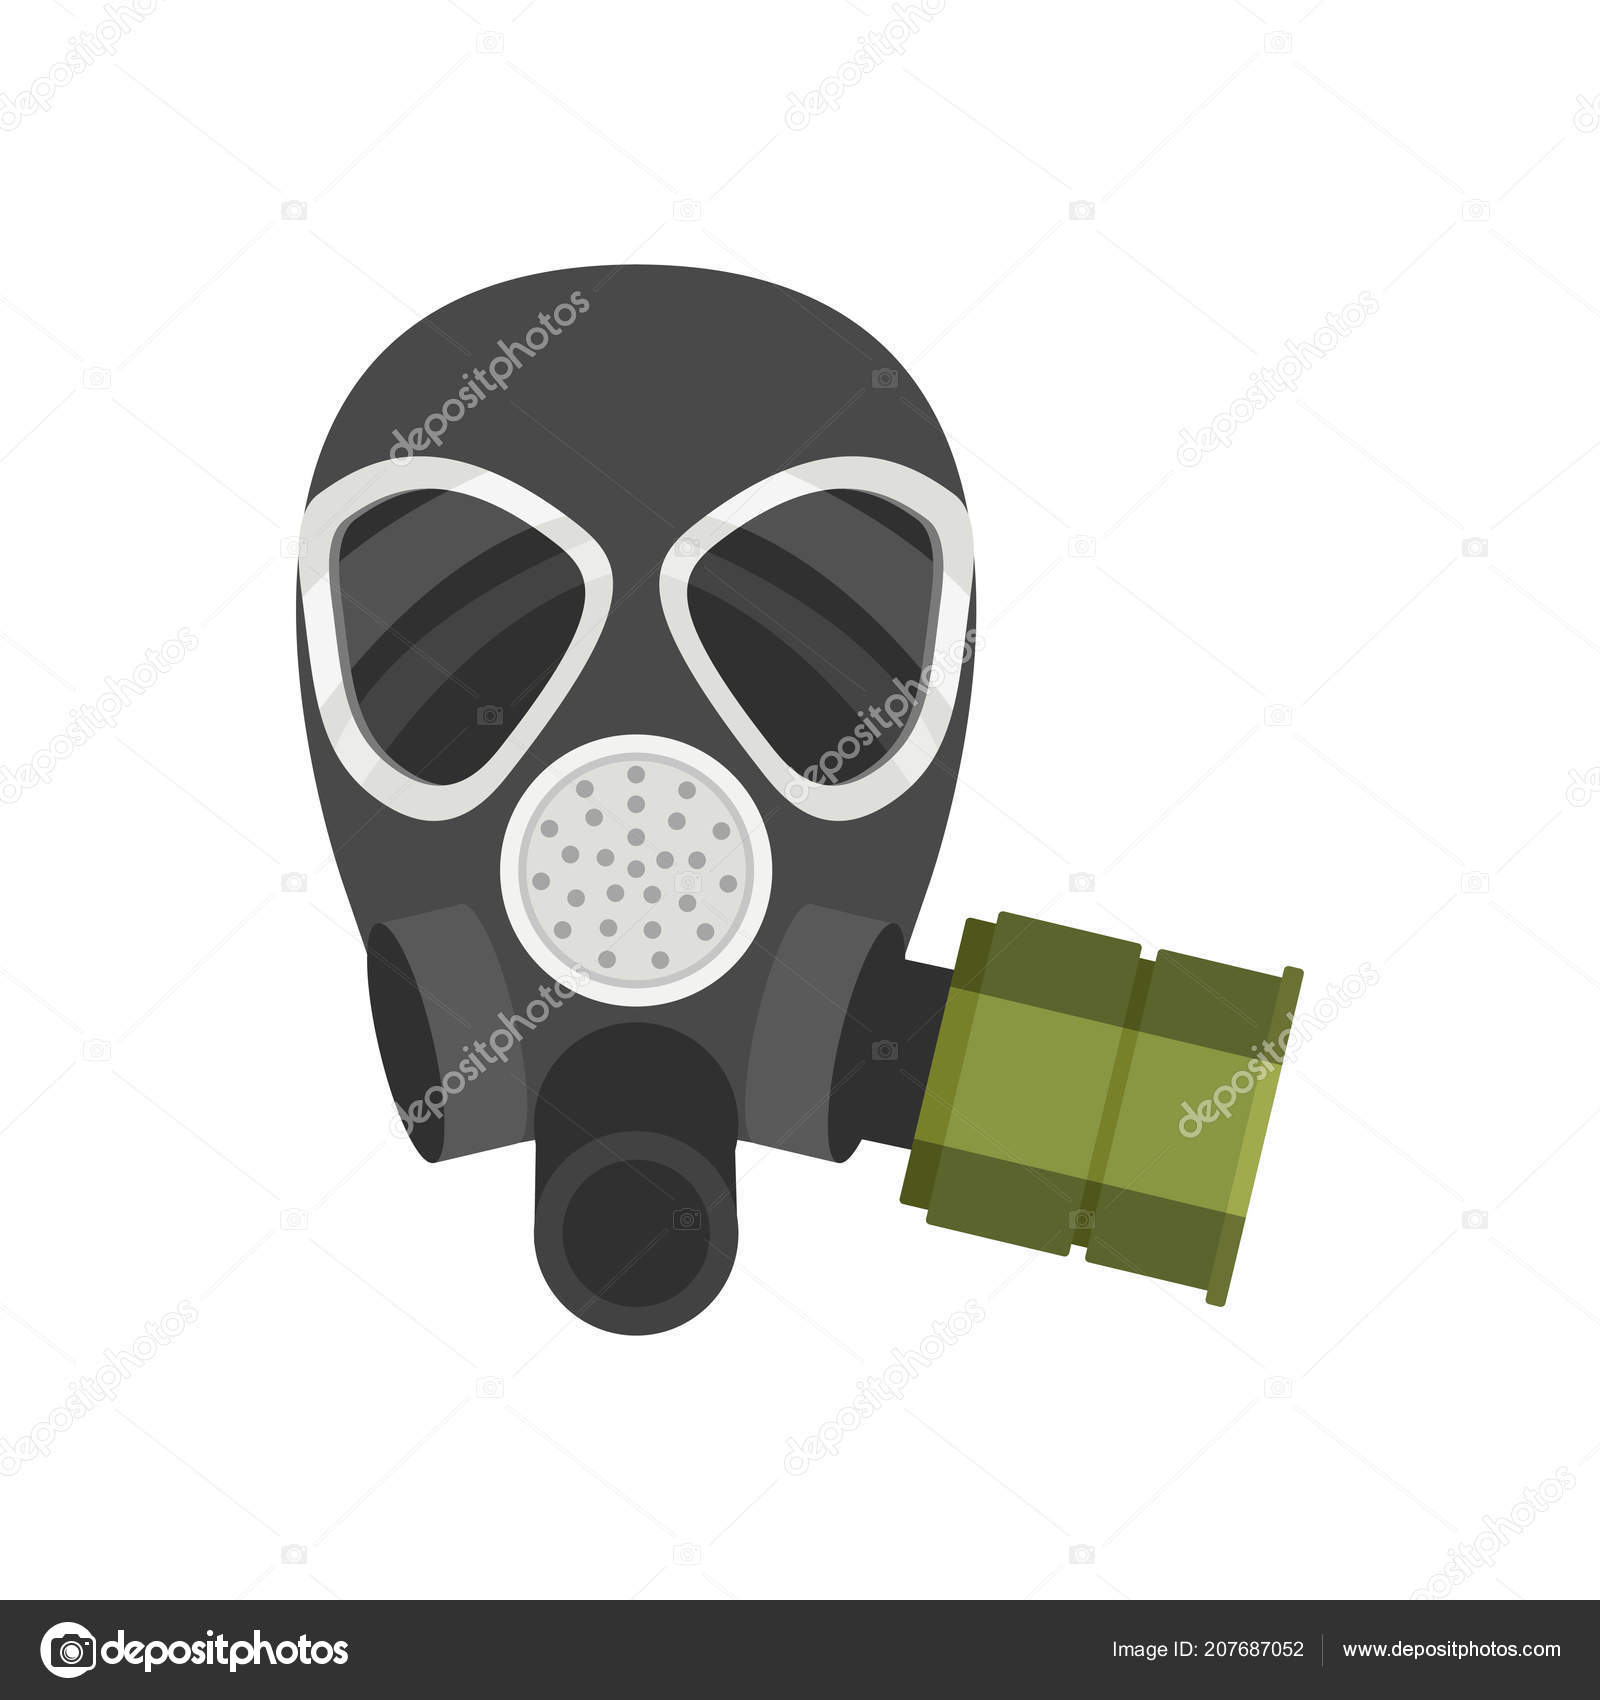 flat vector icon of respirator for firefighters or military